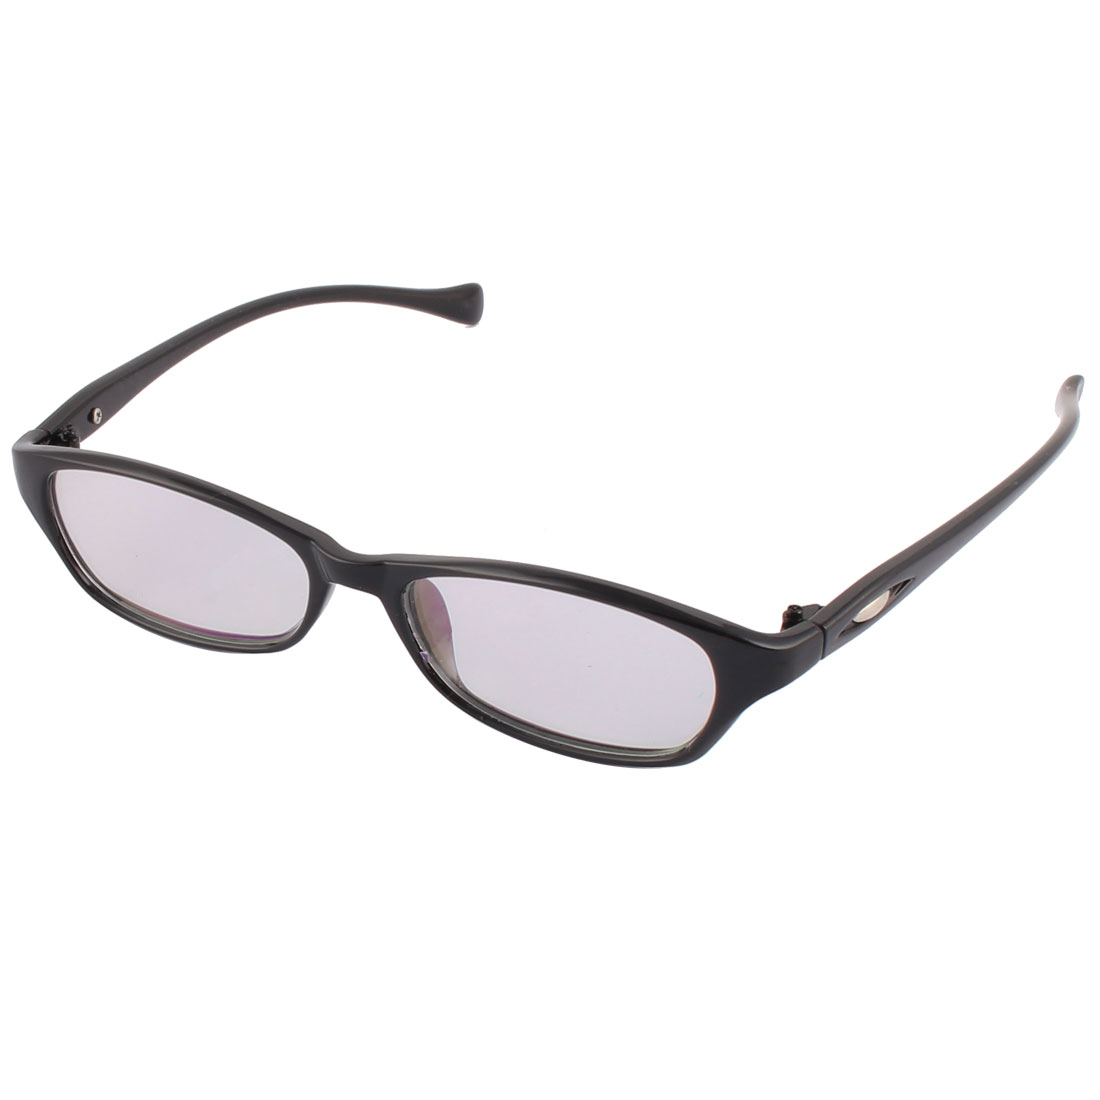 Travel Office Unisex Plastic Rectangle Shaped Full Frame Single Bridge Plain Glasses